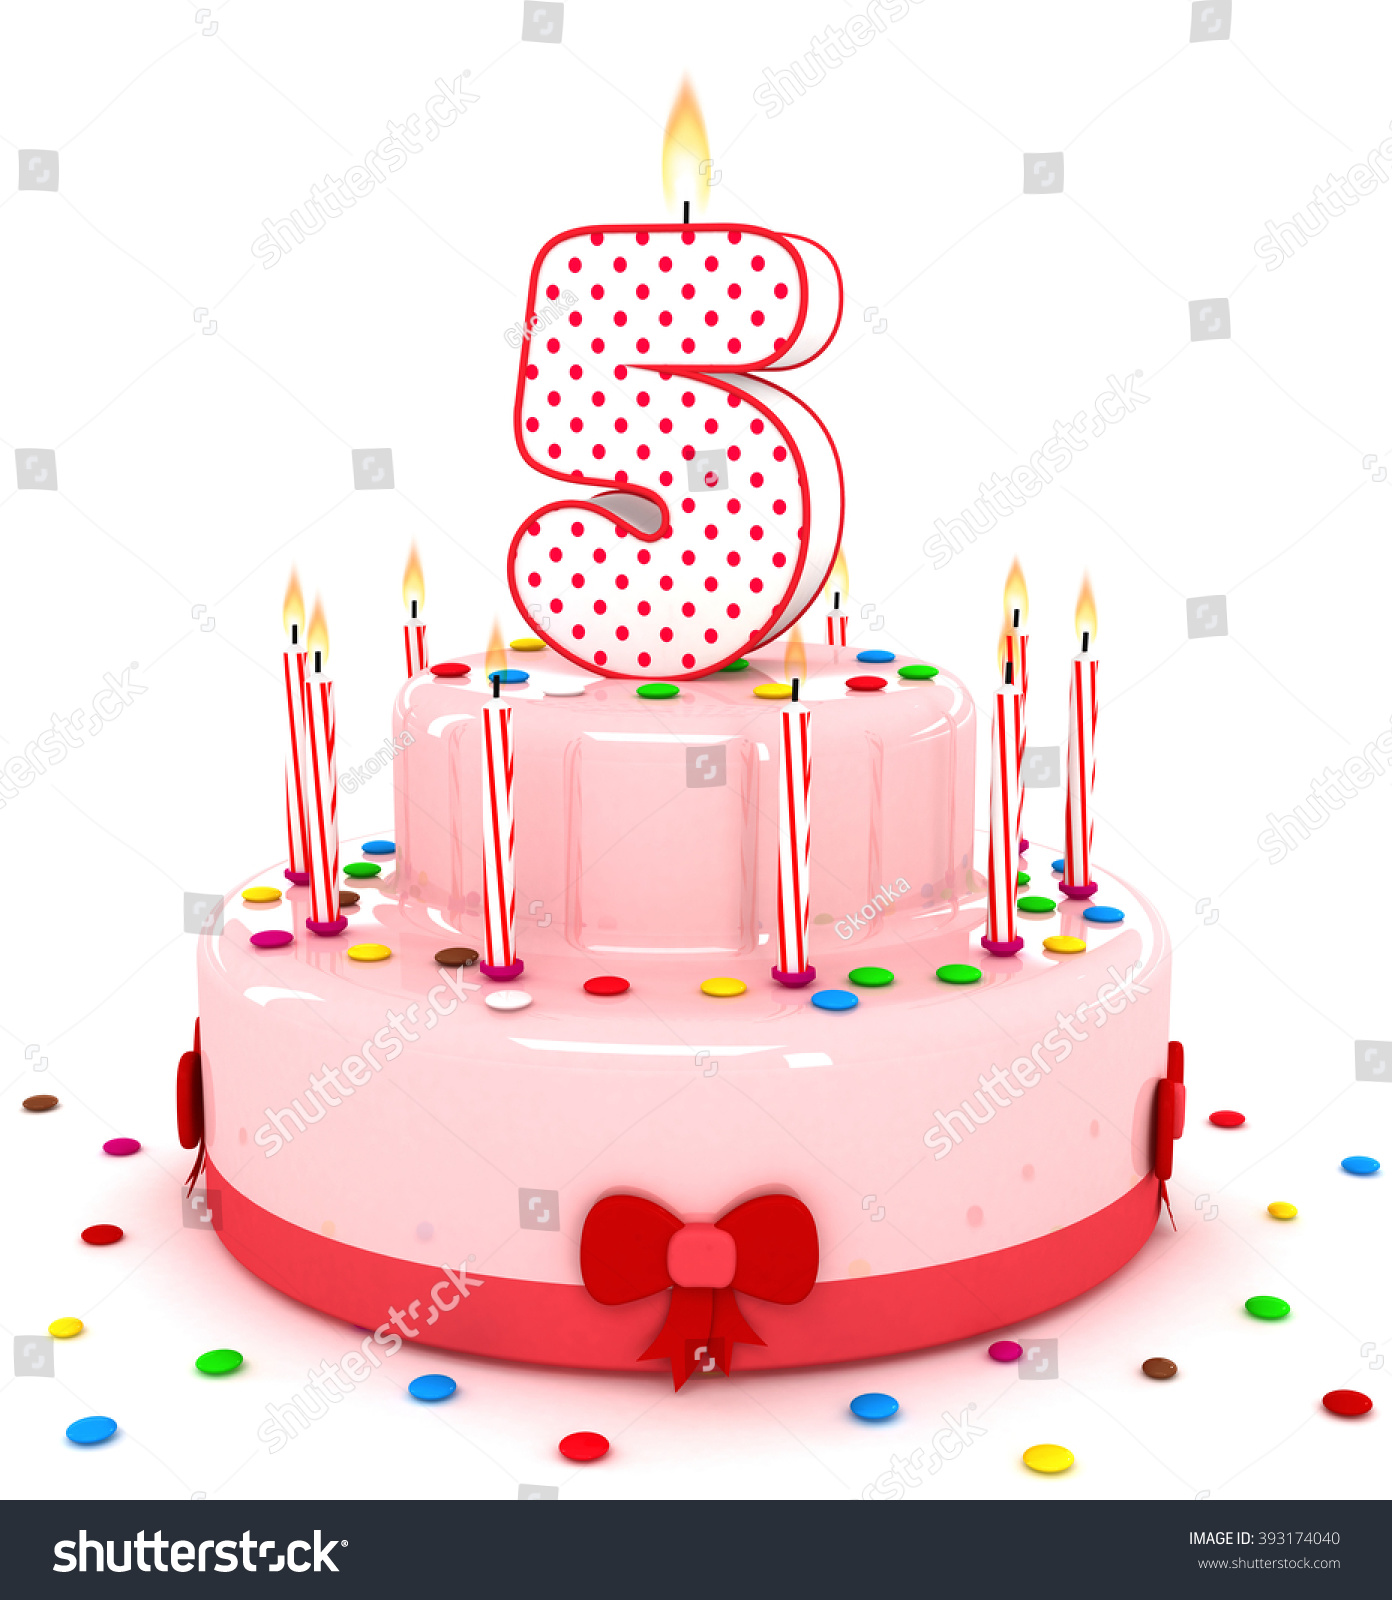 3d Cute Number 5 Five Rendering Colorful Birthday Cake Year With Sweet Candle And